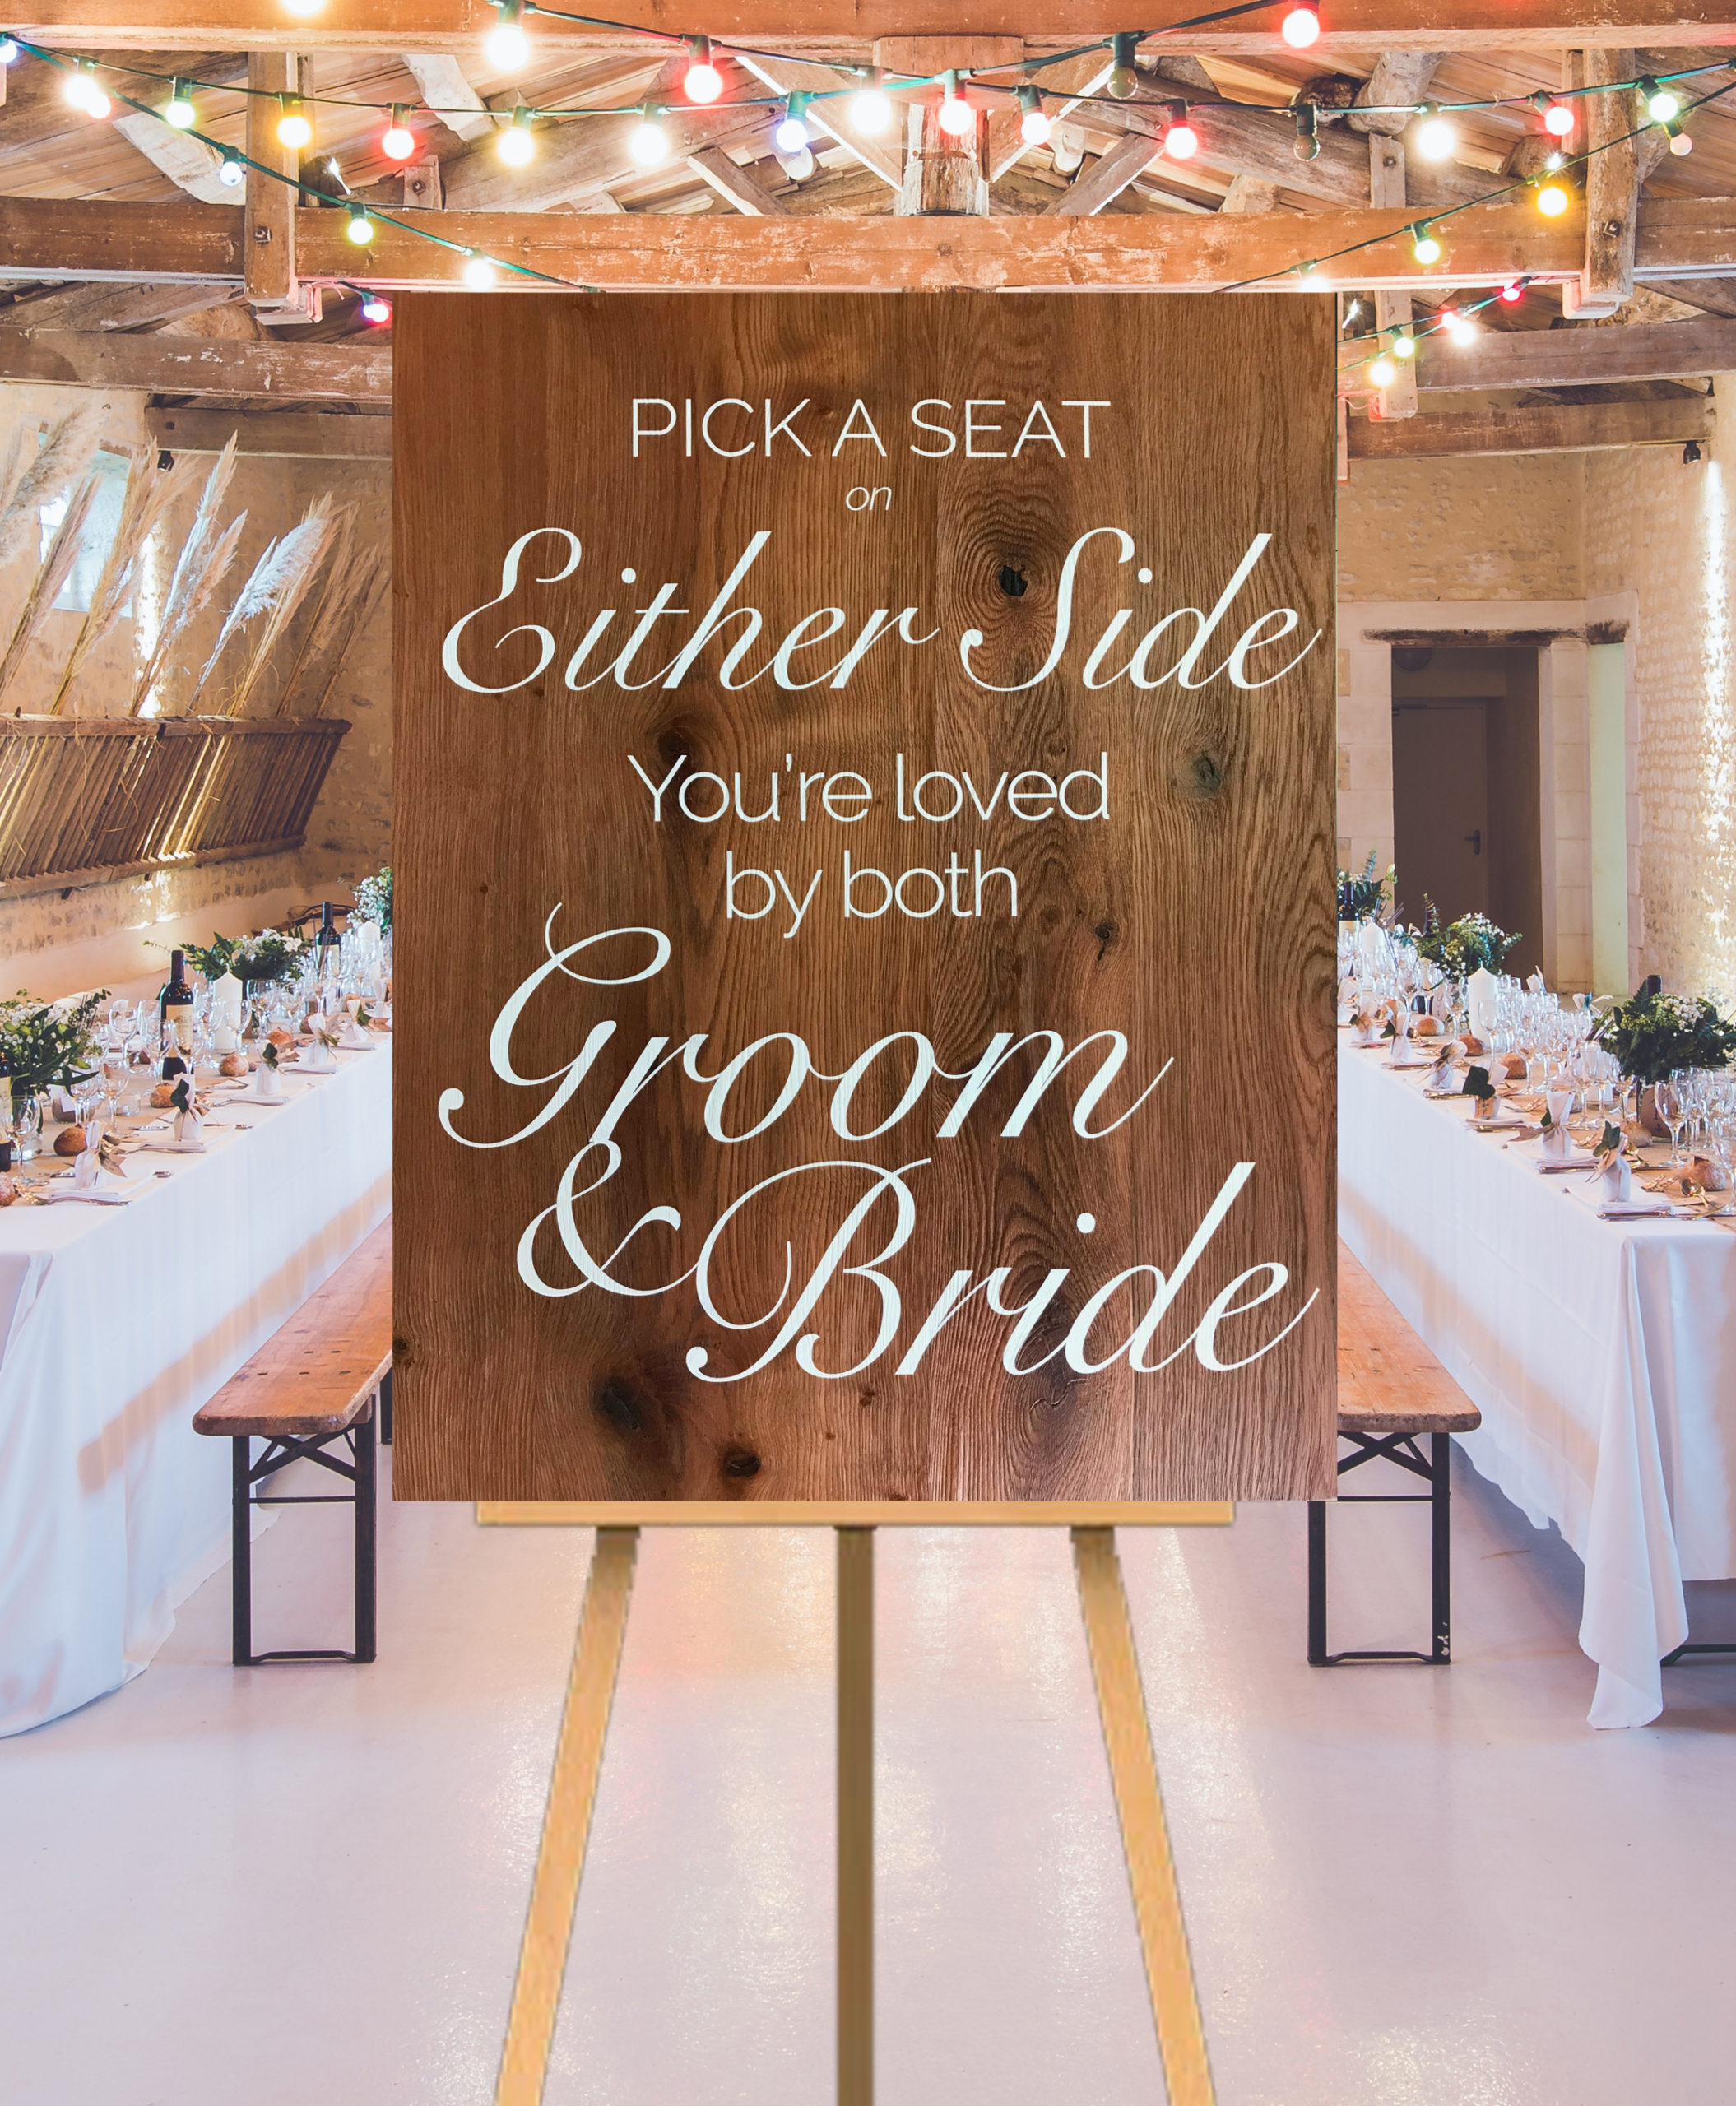 Pick a seat on either side wooden wedding sign